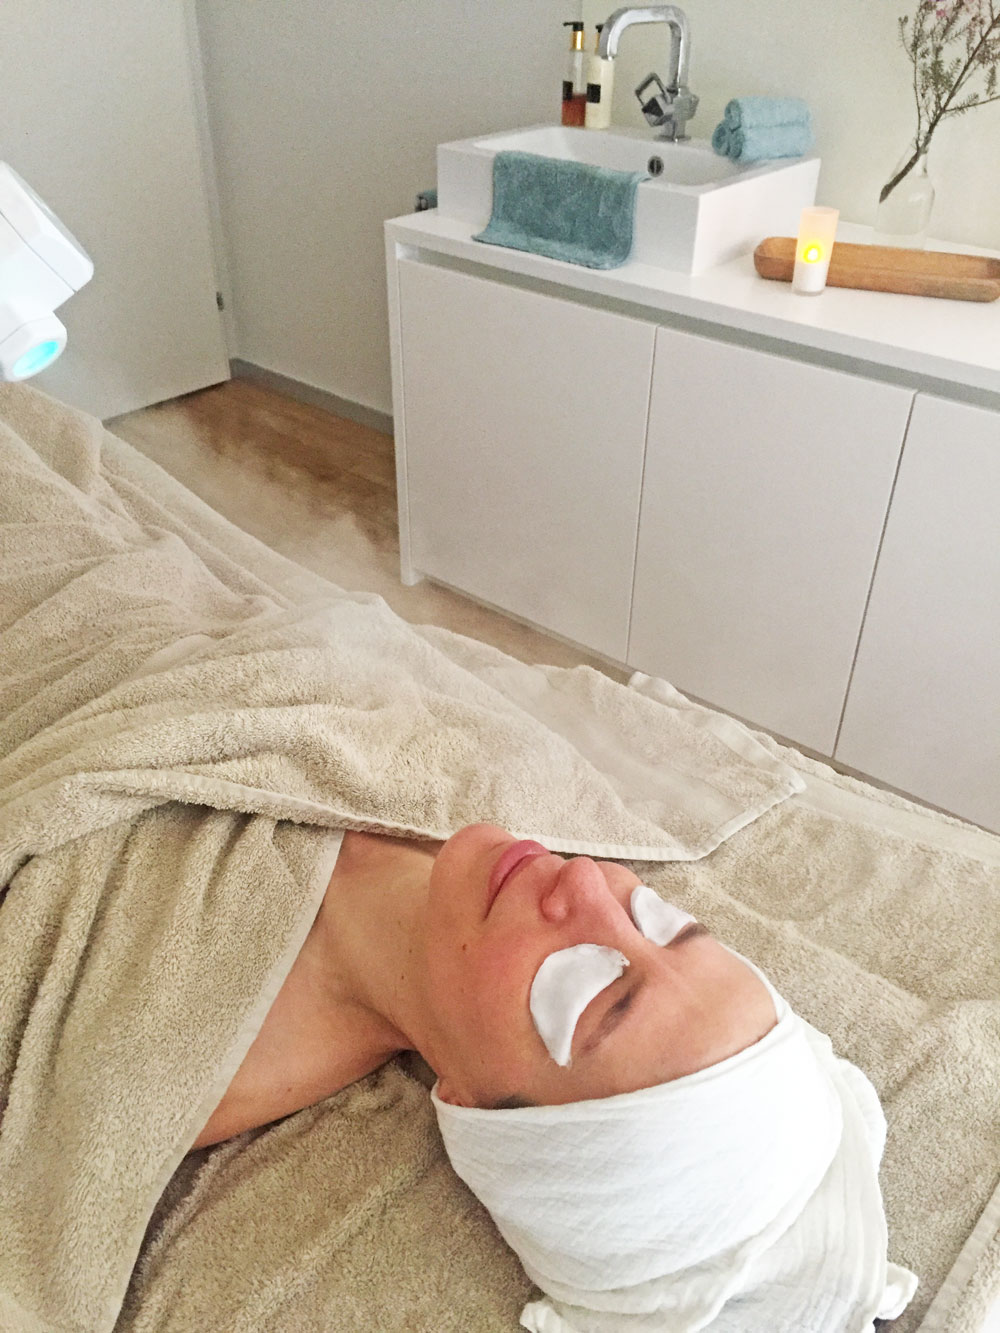 sonrisa besucht den neuen Spa von The Organic Pharmacy in Zh: Ein Wellness-Test.